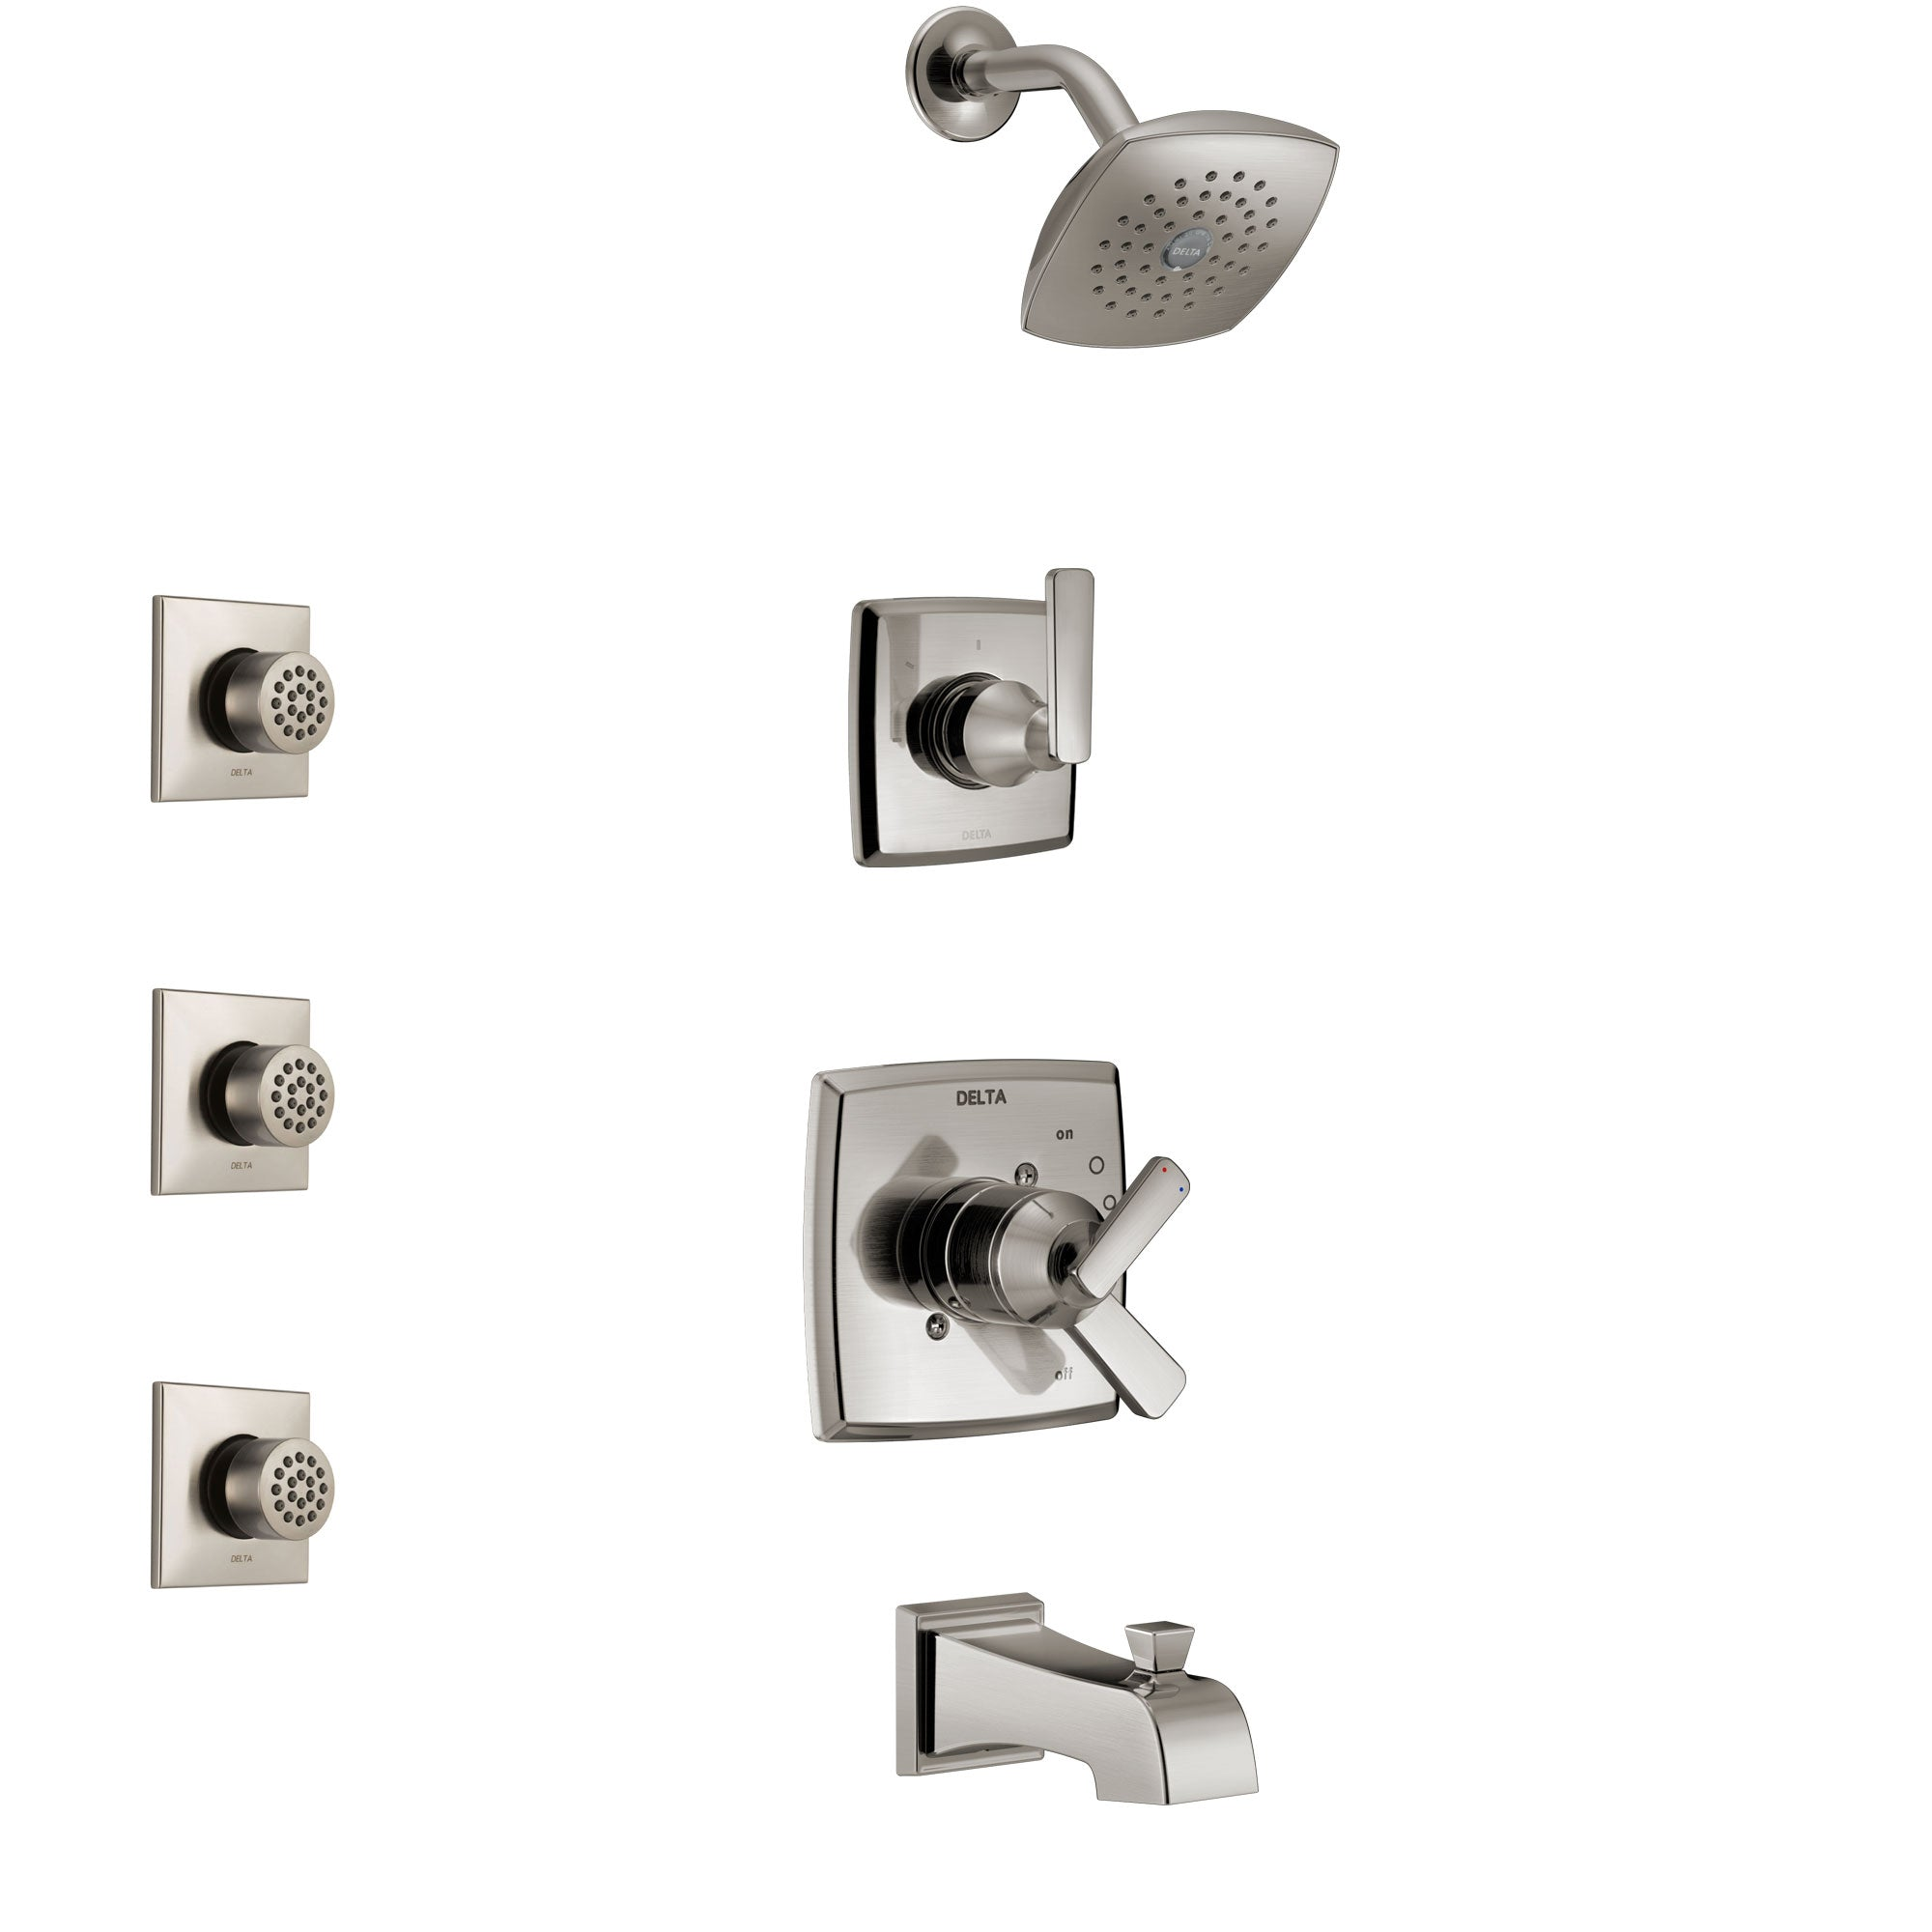 Delta Ashlyn Stainless Steel Finish Tub and Shower System with Dual Control Handle, 3-Setting Diverter, Showerhead, and 3 Body Sprays SS17464SS2